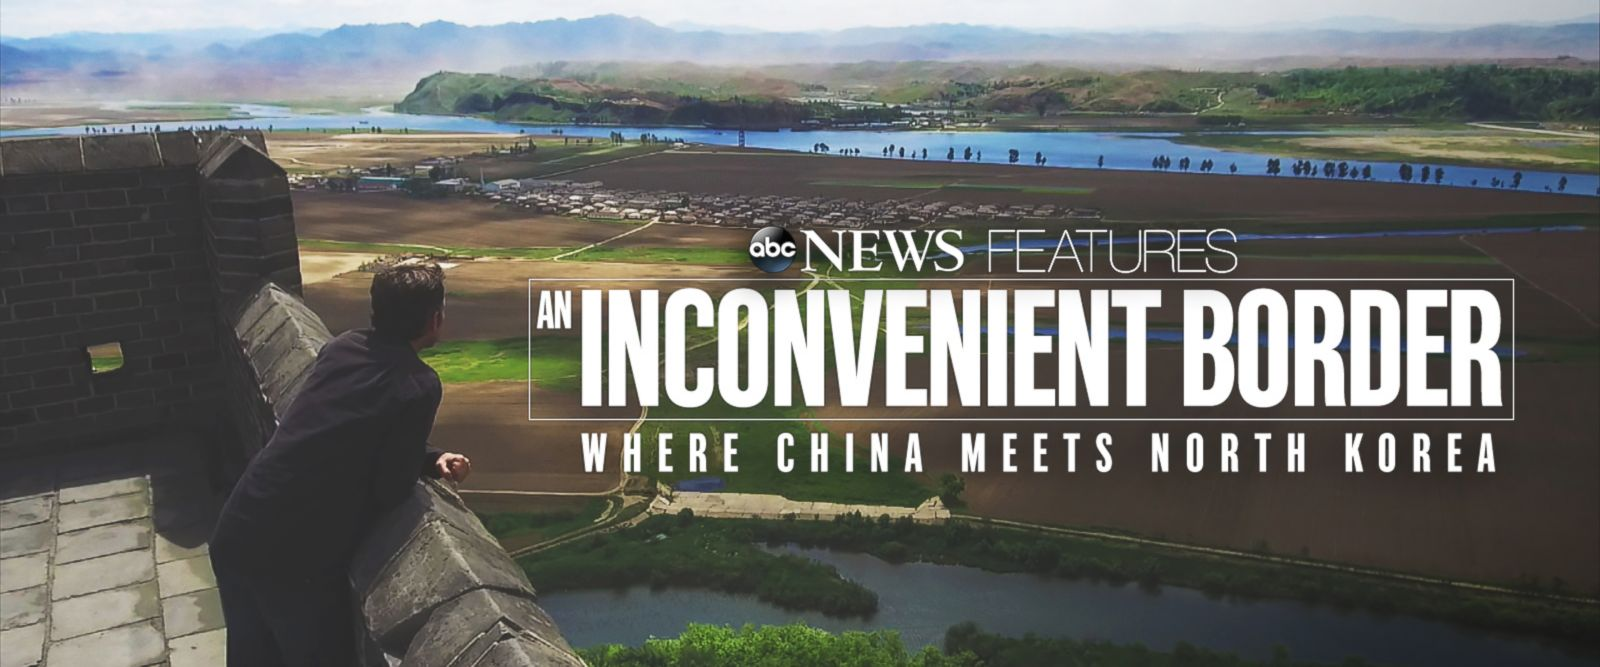 VIDEO: An Inconvenient Border: Where China Meets North Korea